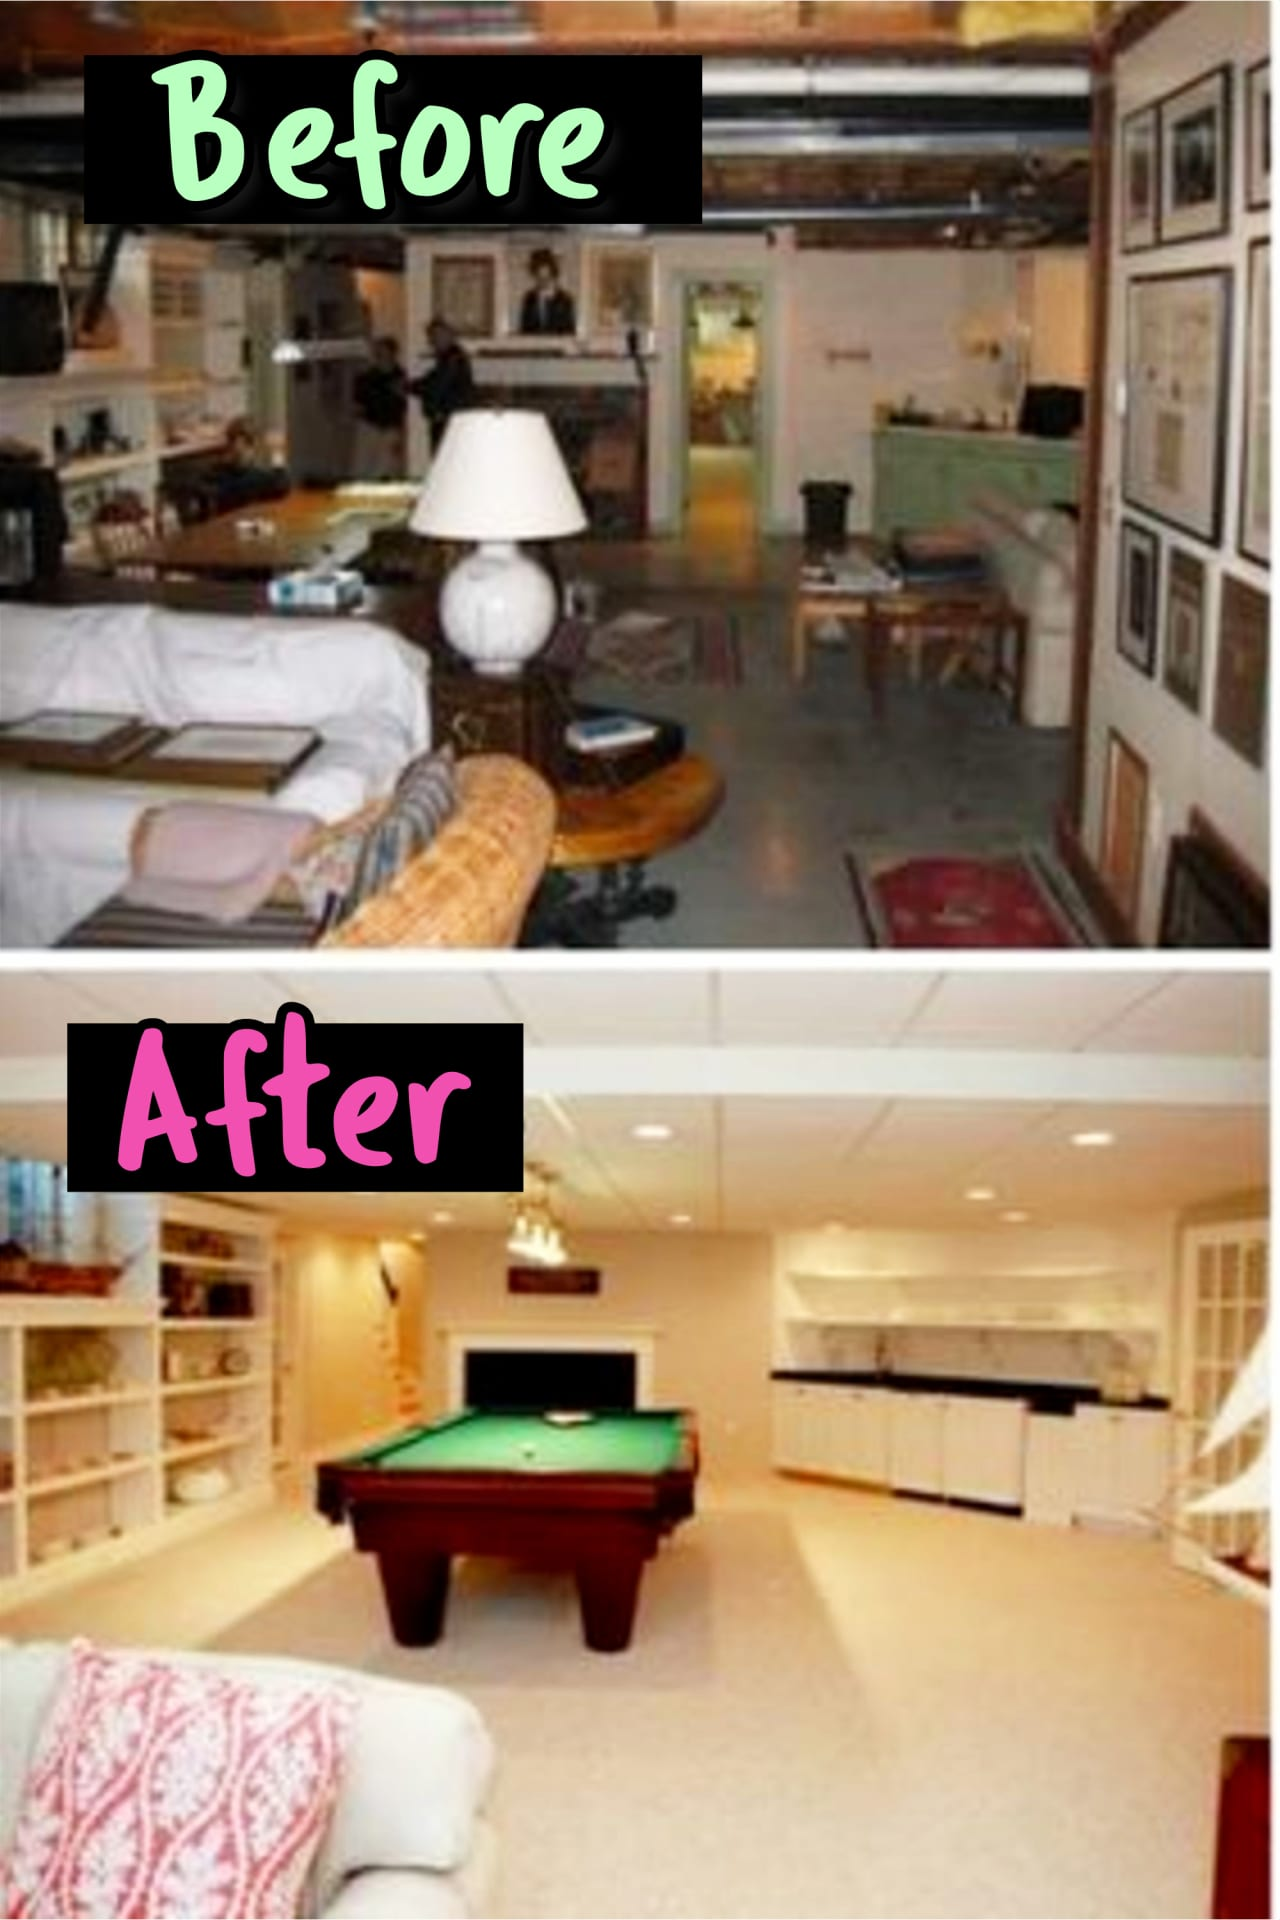 Small finished basement before after remodel ideas - Basement Ideas!  Gorgeous DIY finished basement ideas on a budget - partially finished basement ideas and small basement decor ideas for finishing and decorating a basement on a budget